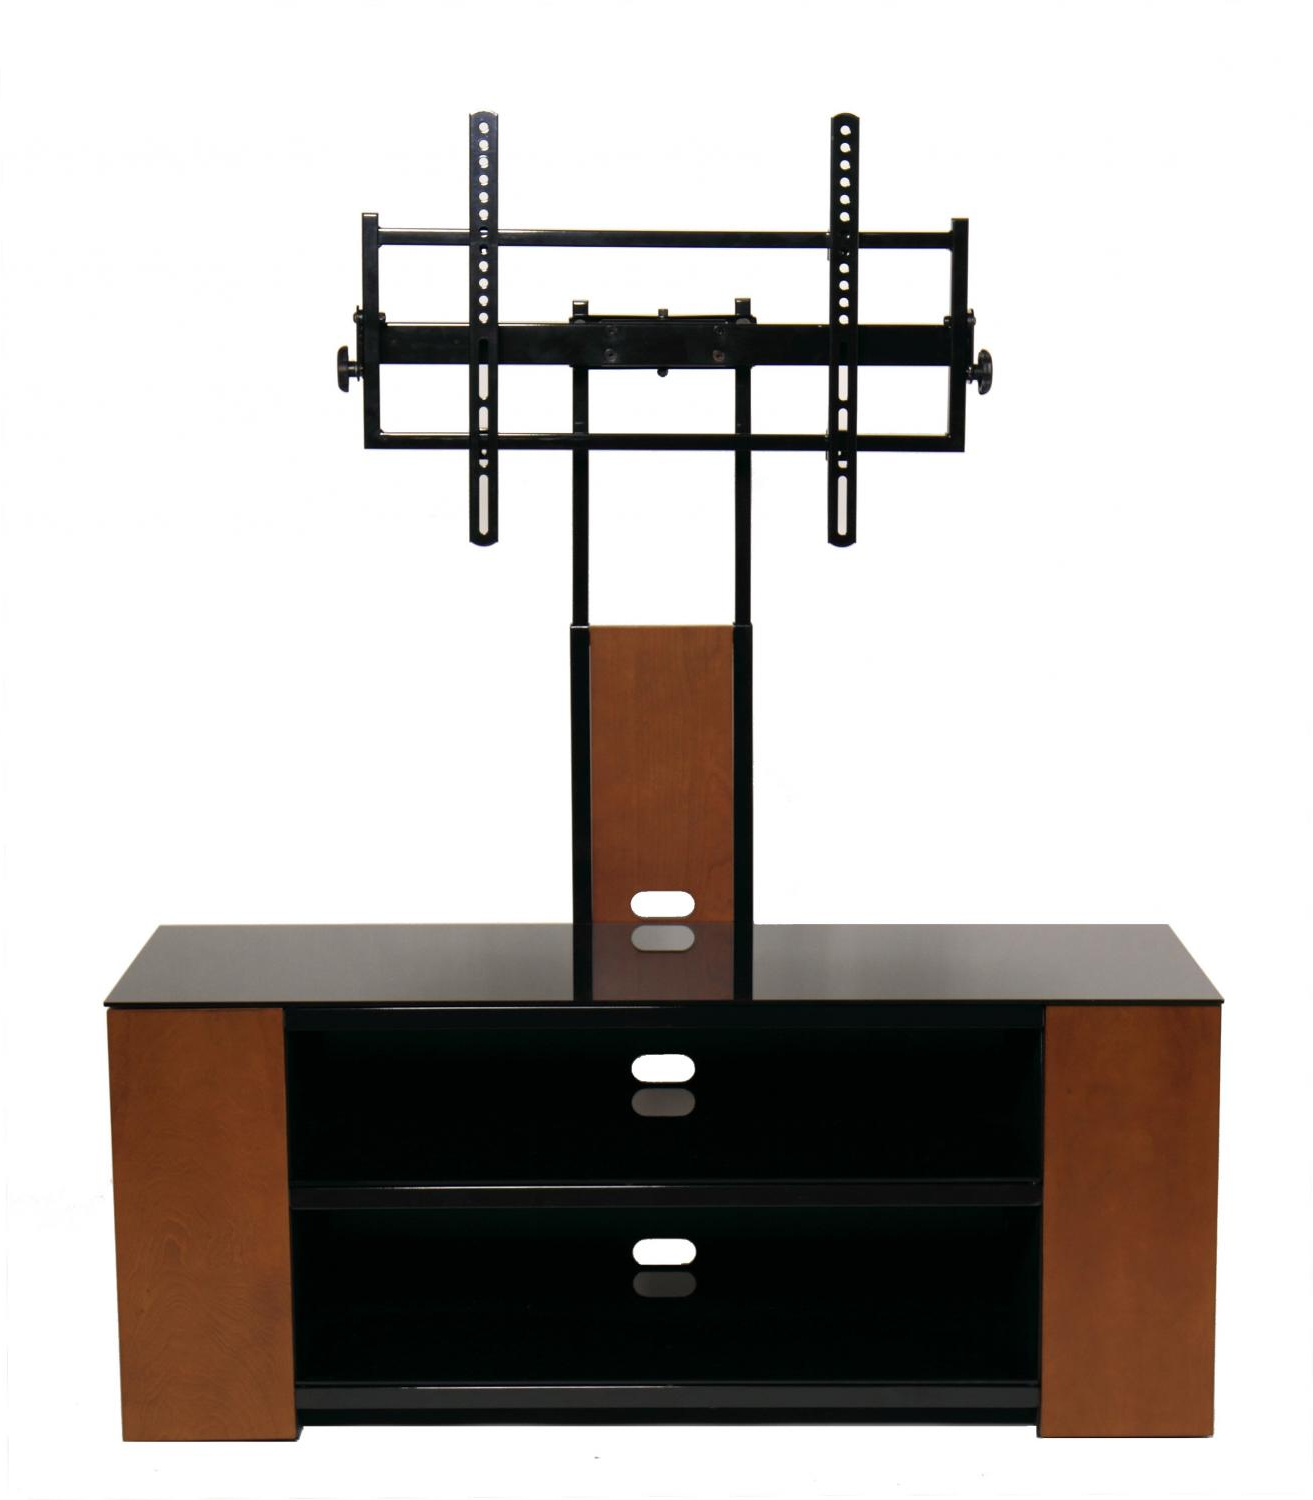 Versatile Tv Stand With Multimedia Storage Cabinet For Up In Modern Mobile Rolling Tv Stands With Metal Shelf Black Finish (View 7 of 20)